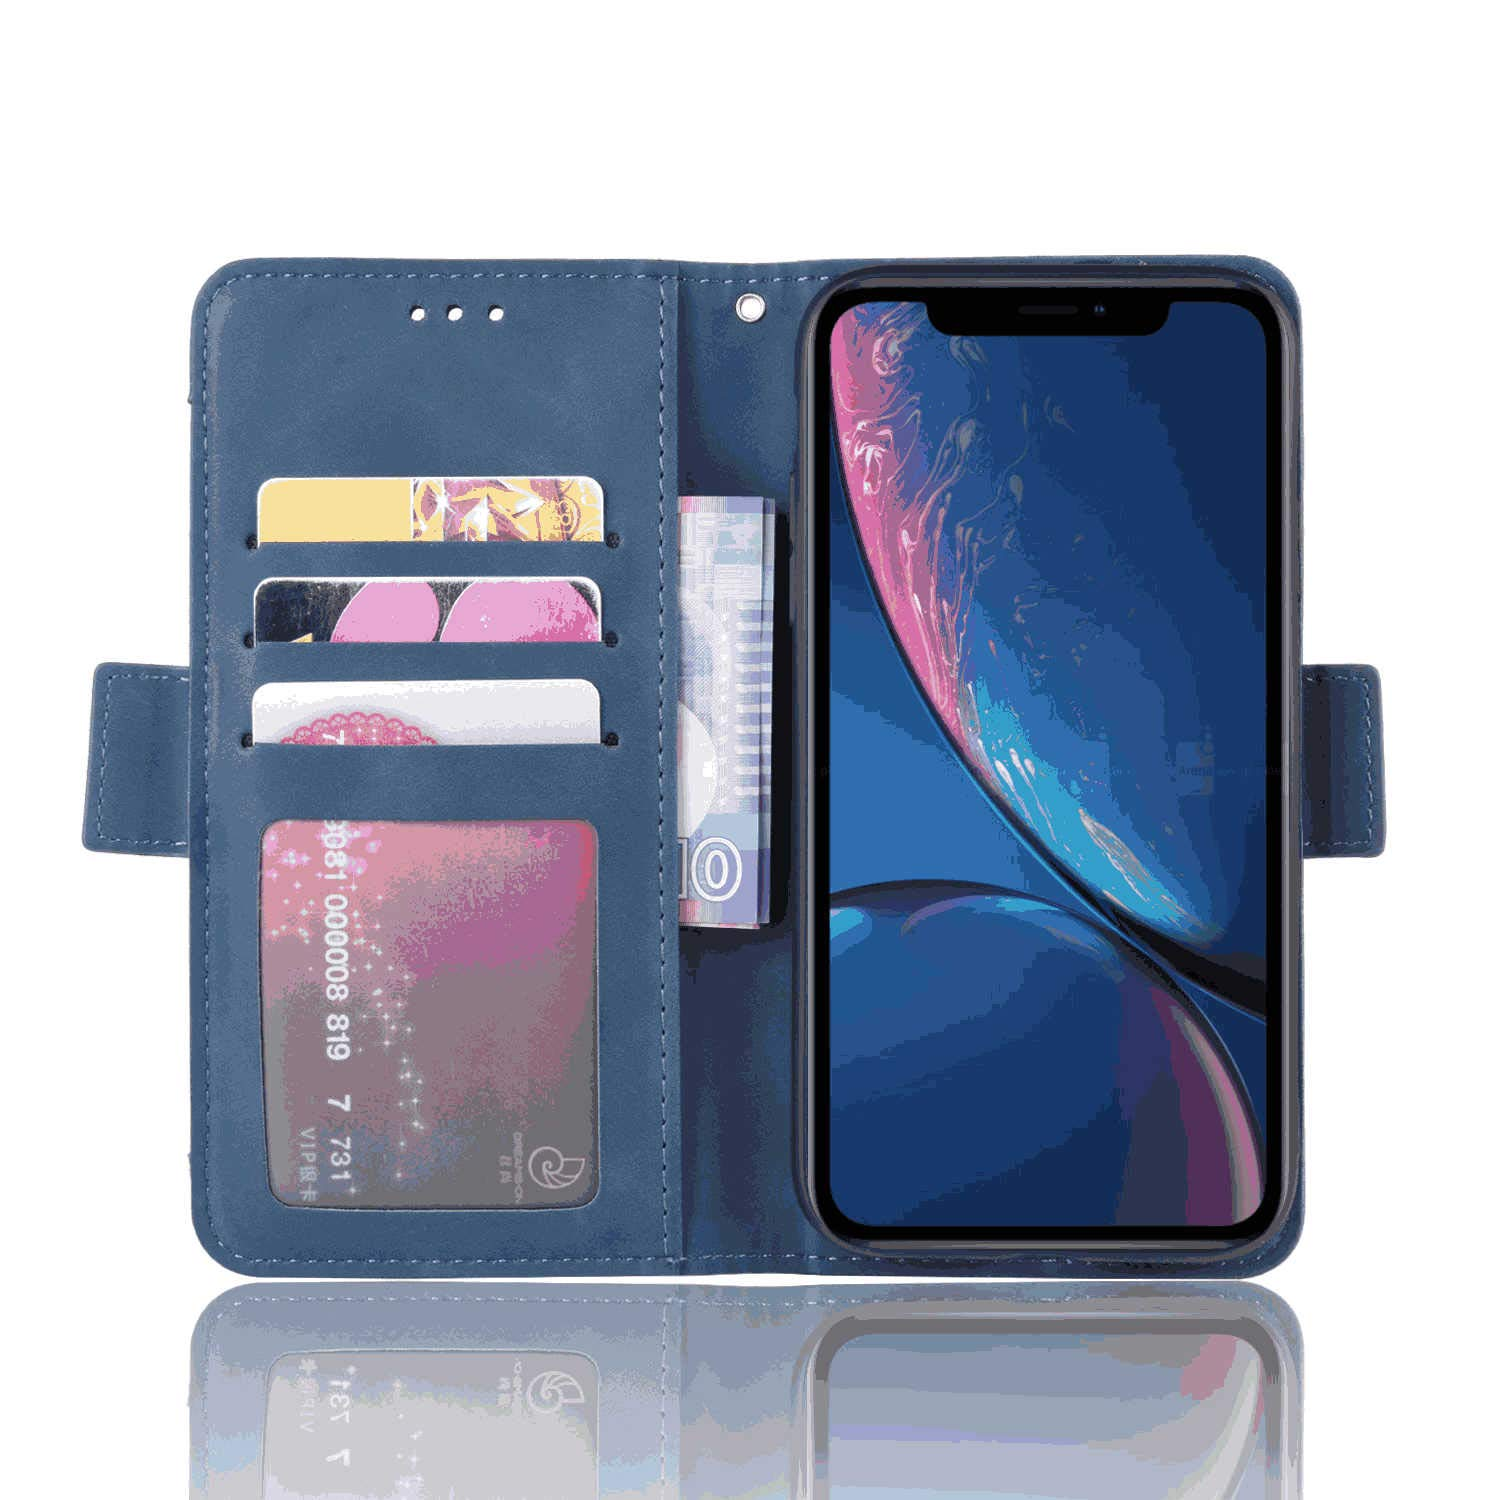 Leather Cover Business Gifts Wallet with Extra Waterproof Underwater Case Flip Case for iPhone 8 Plus